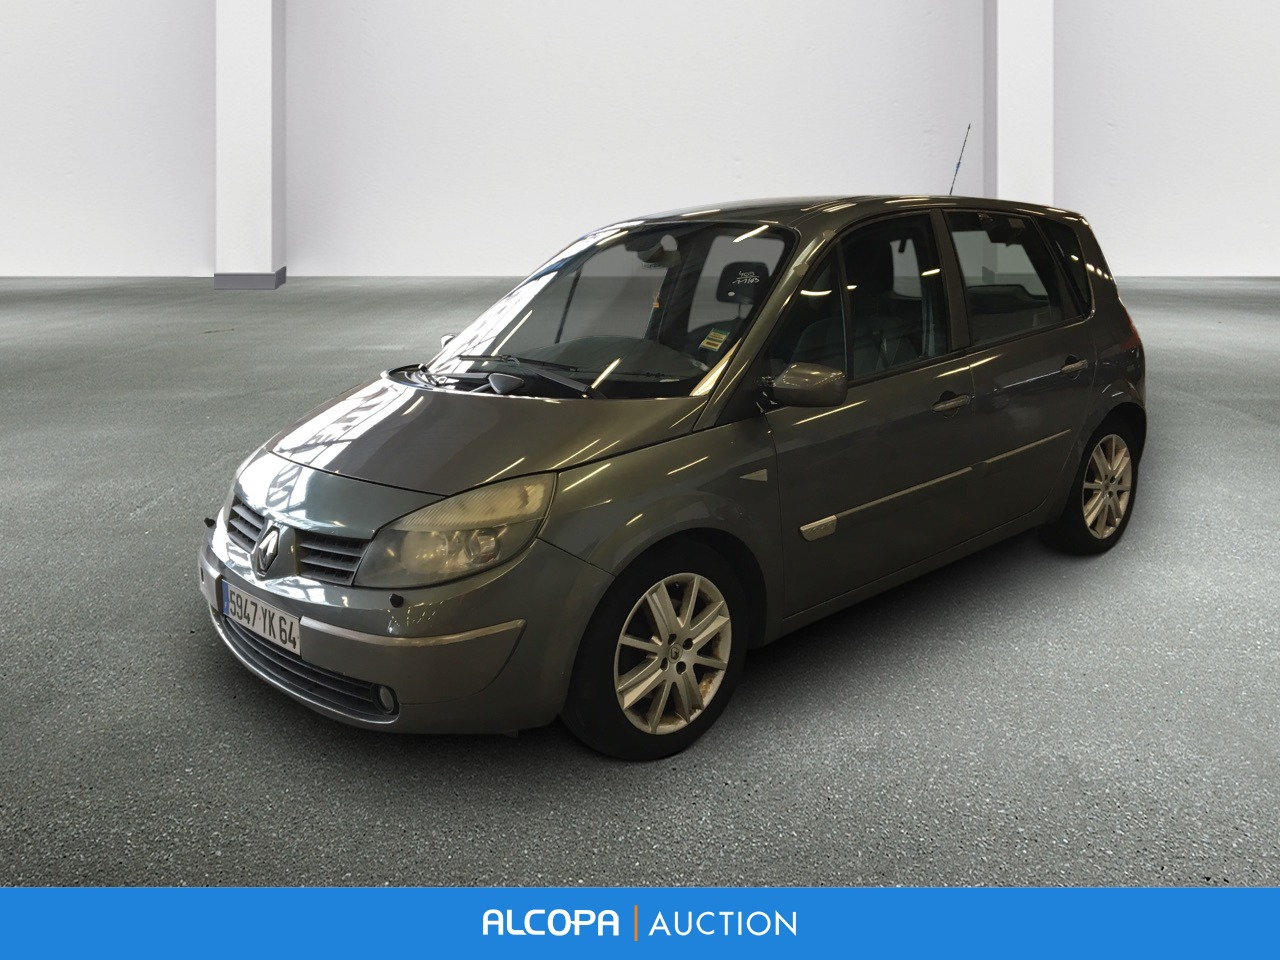 renault scenic ii 06 2003 09 2006 scenic 1 9 dci 120 luxe dynamique alcopa auction. Black Bedroom Furniture Sets. Home Design Ideas